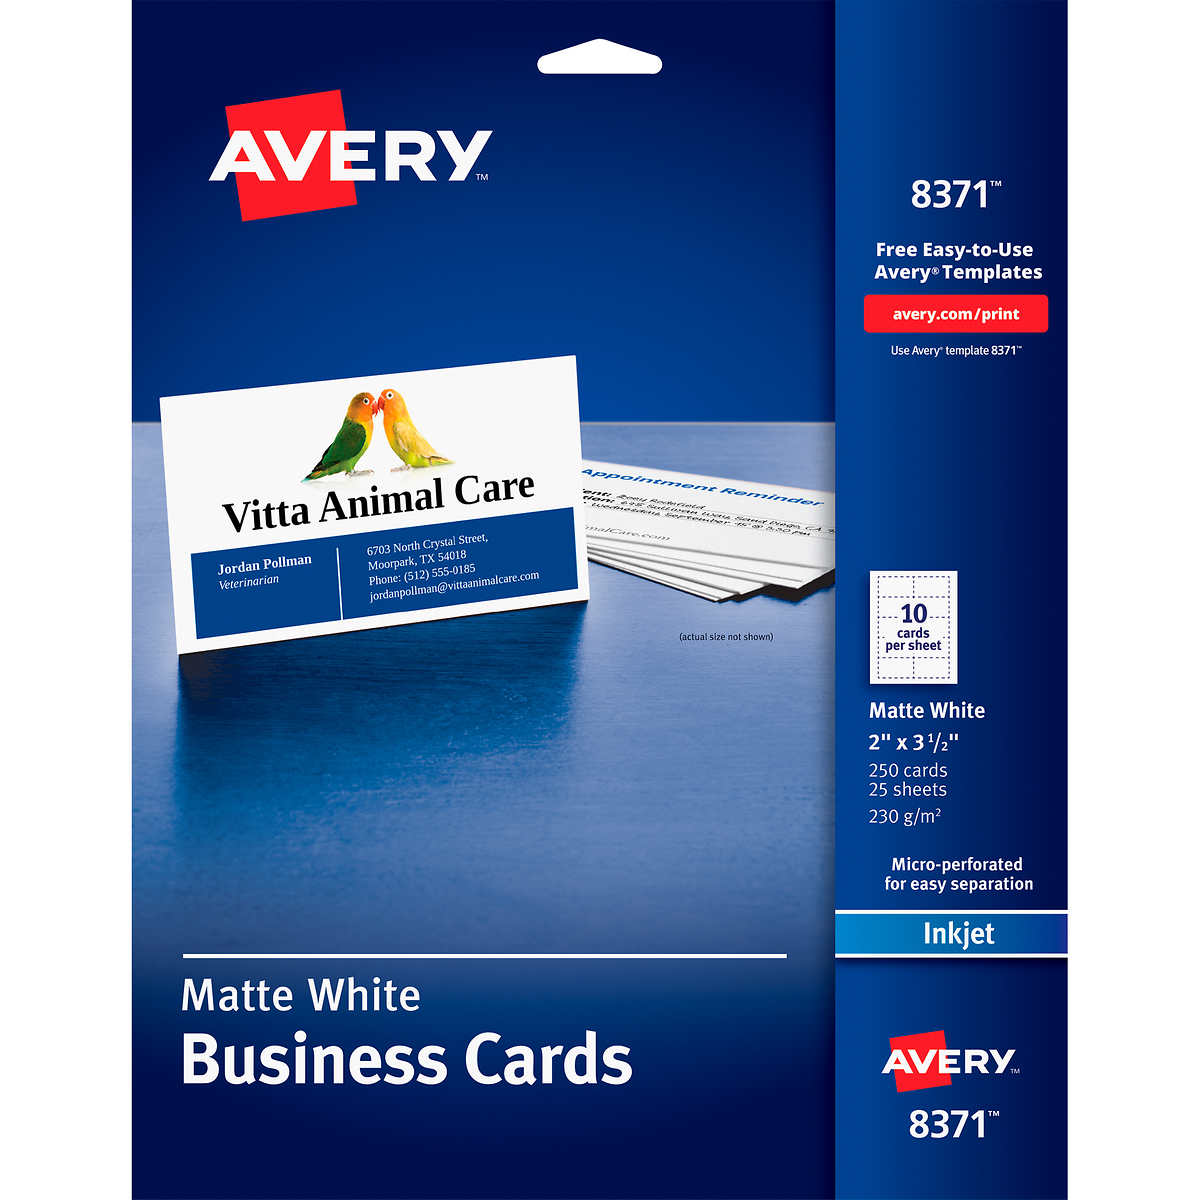 Avery Business Cards Matte White X Ct AVE - Business card template 8371